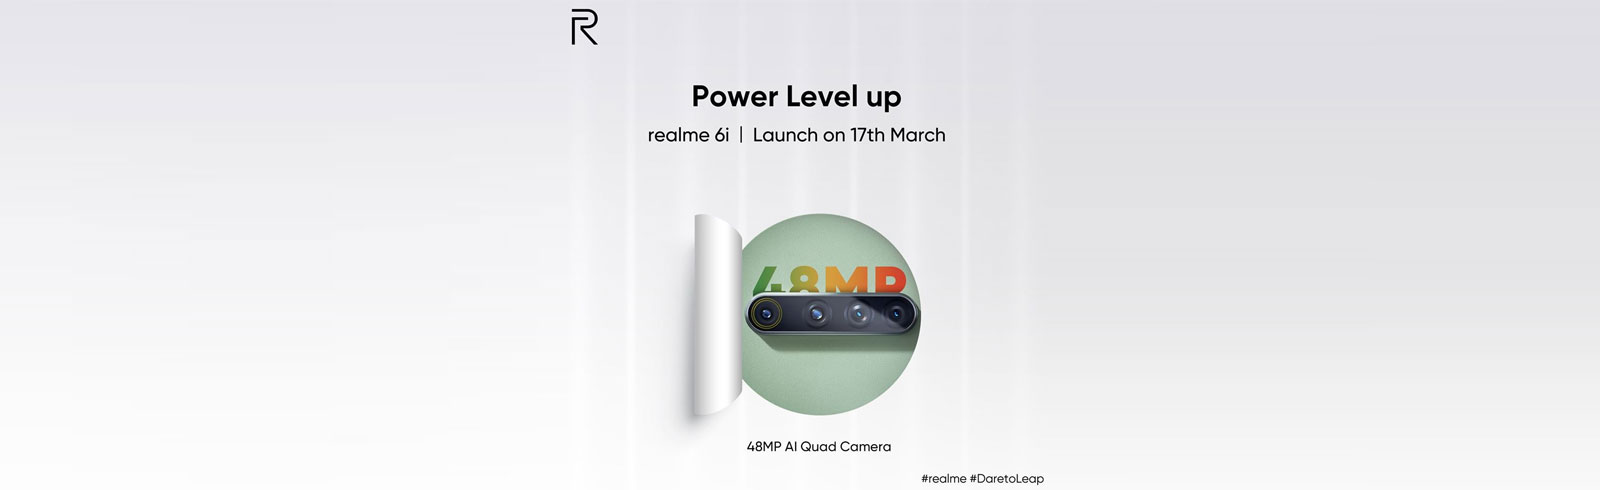 Realme 6i with Helio G80 chipset and 48MP quad-camera will be announced on March 17